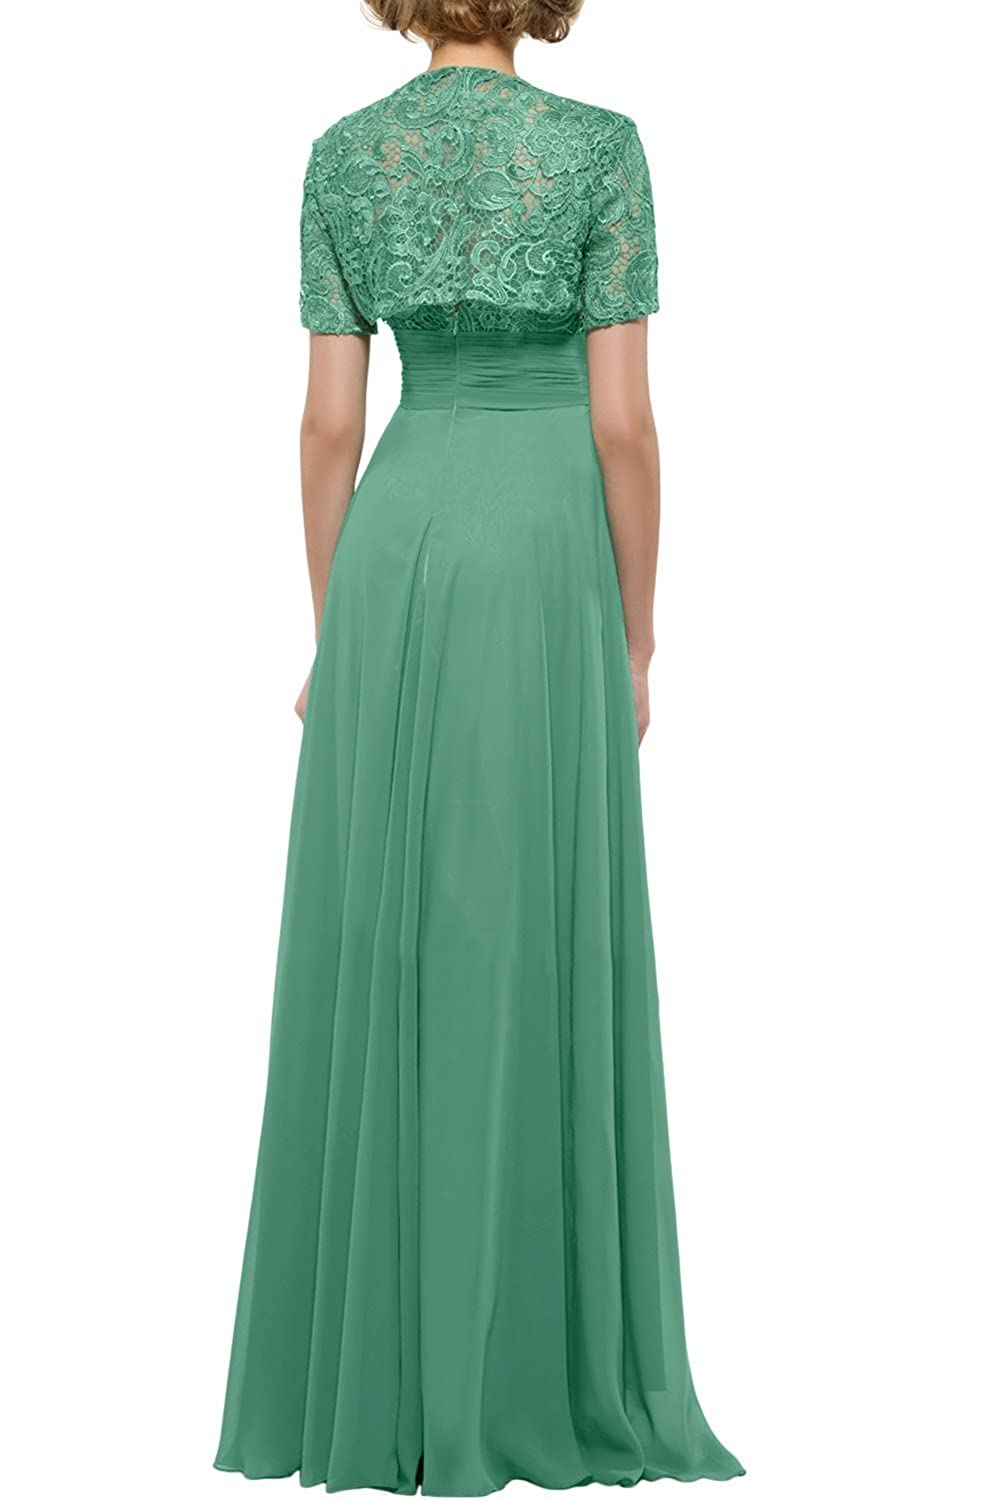 DressyMe Womens Lace Jacket Long Wedding Dresses for Guest A-Line Chiffon